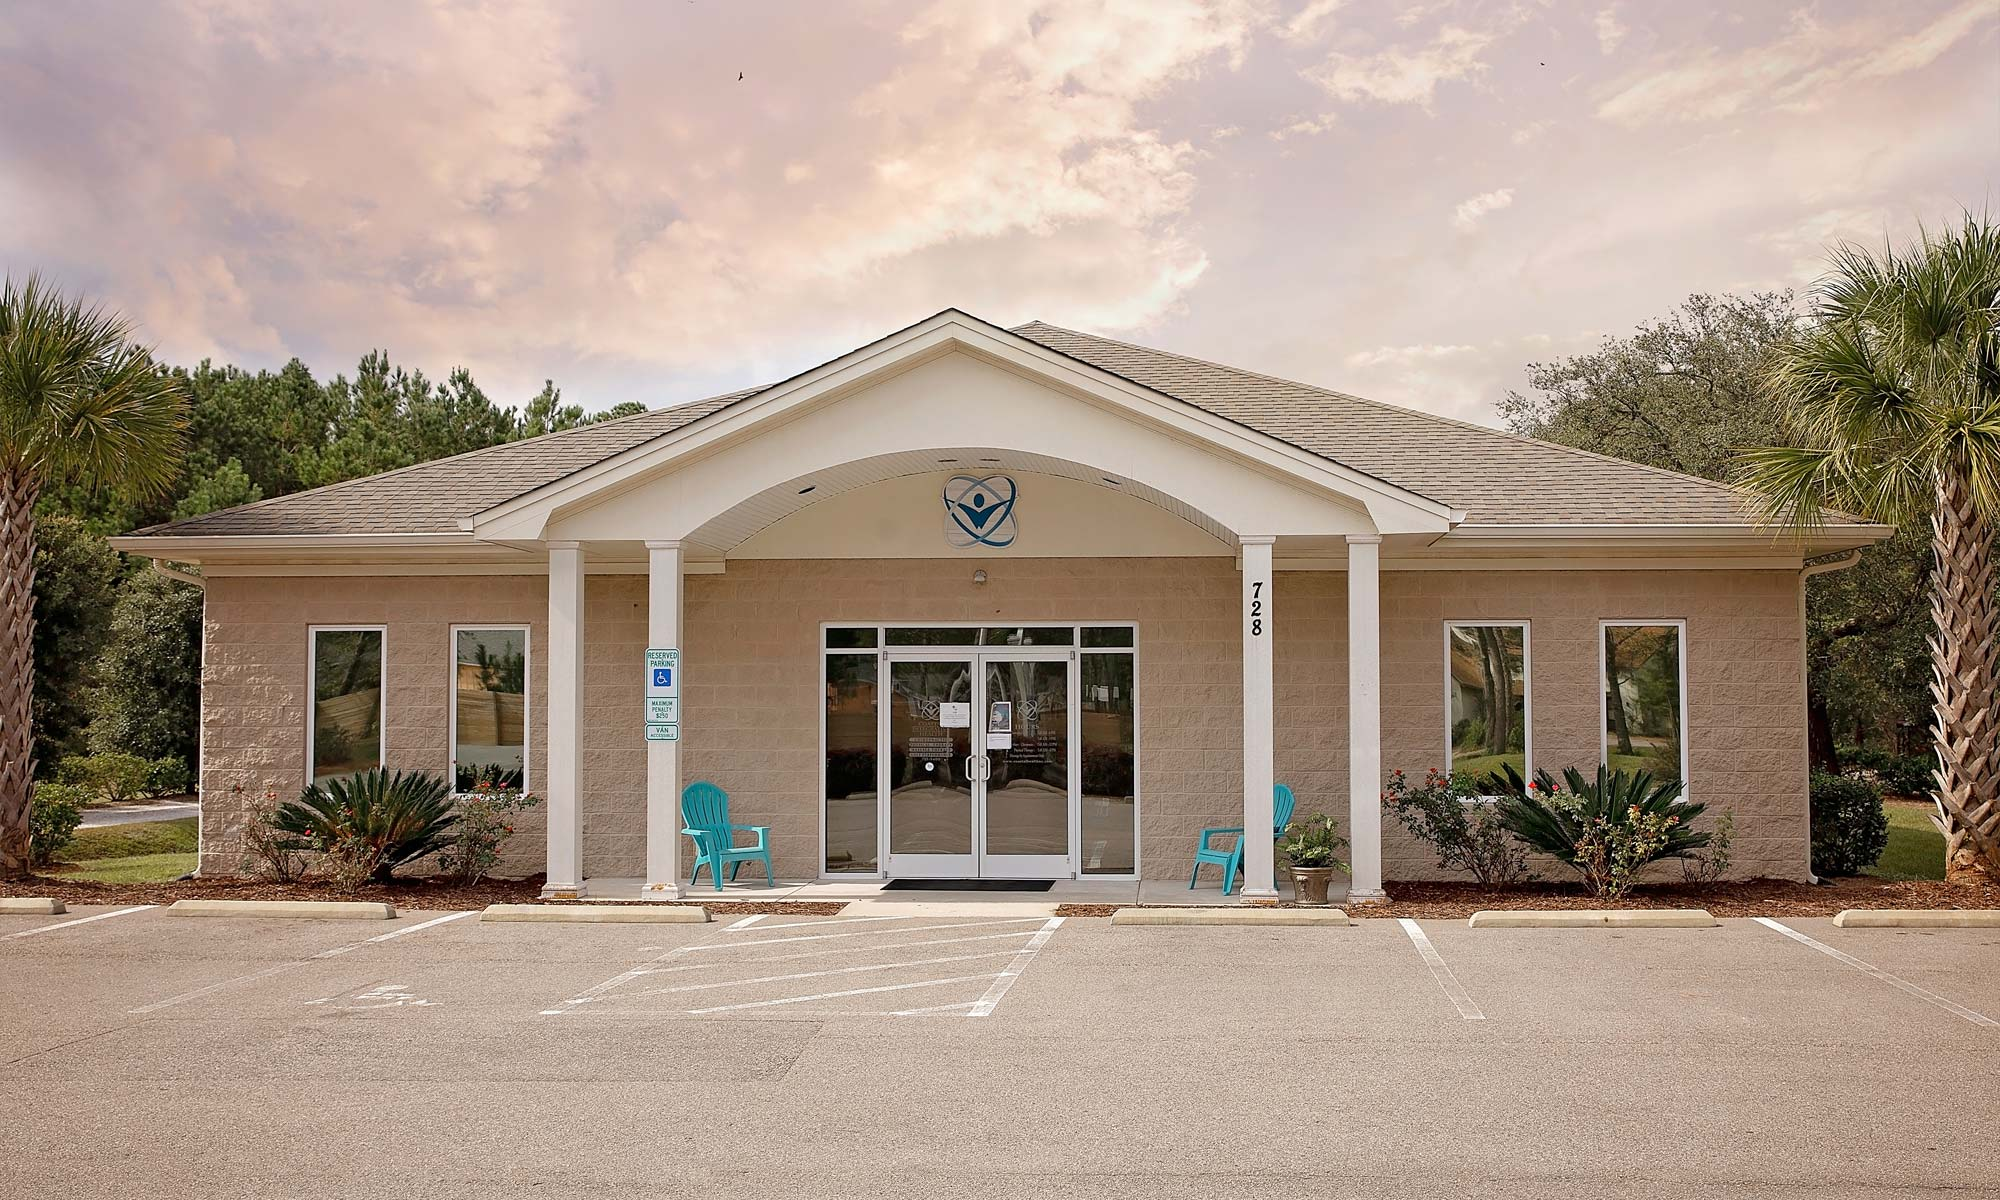 Chiropractic Shallotte NC Coastal Integrative Health Office